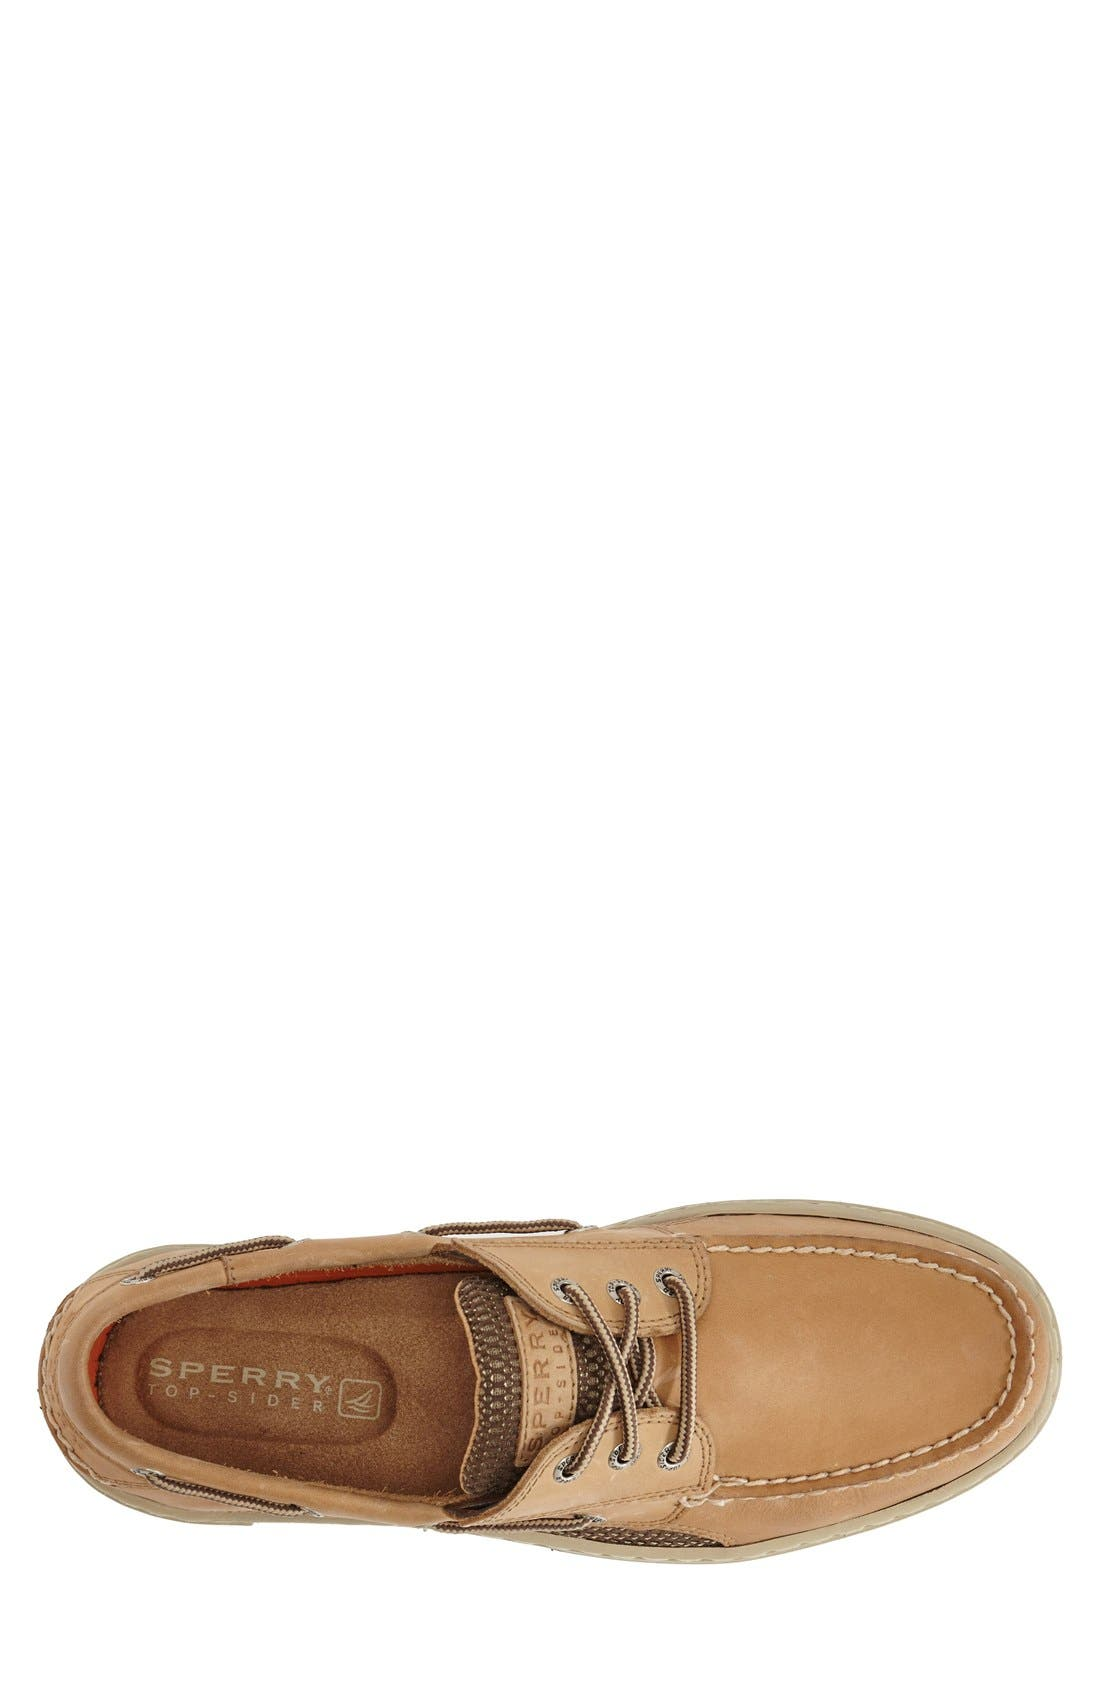 'Billfish Ultralite' Boat Shoe,                             Alternate thumbnail 34, color,